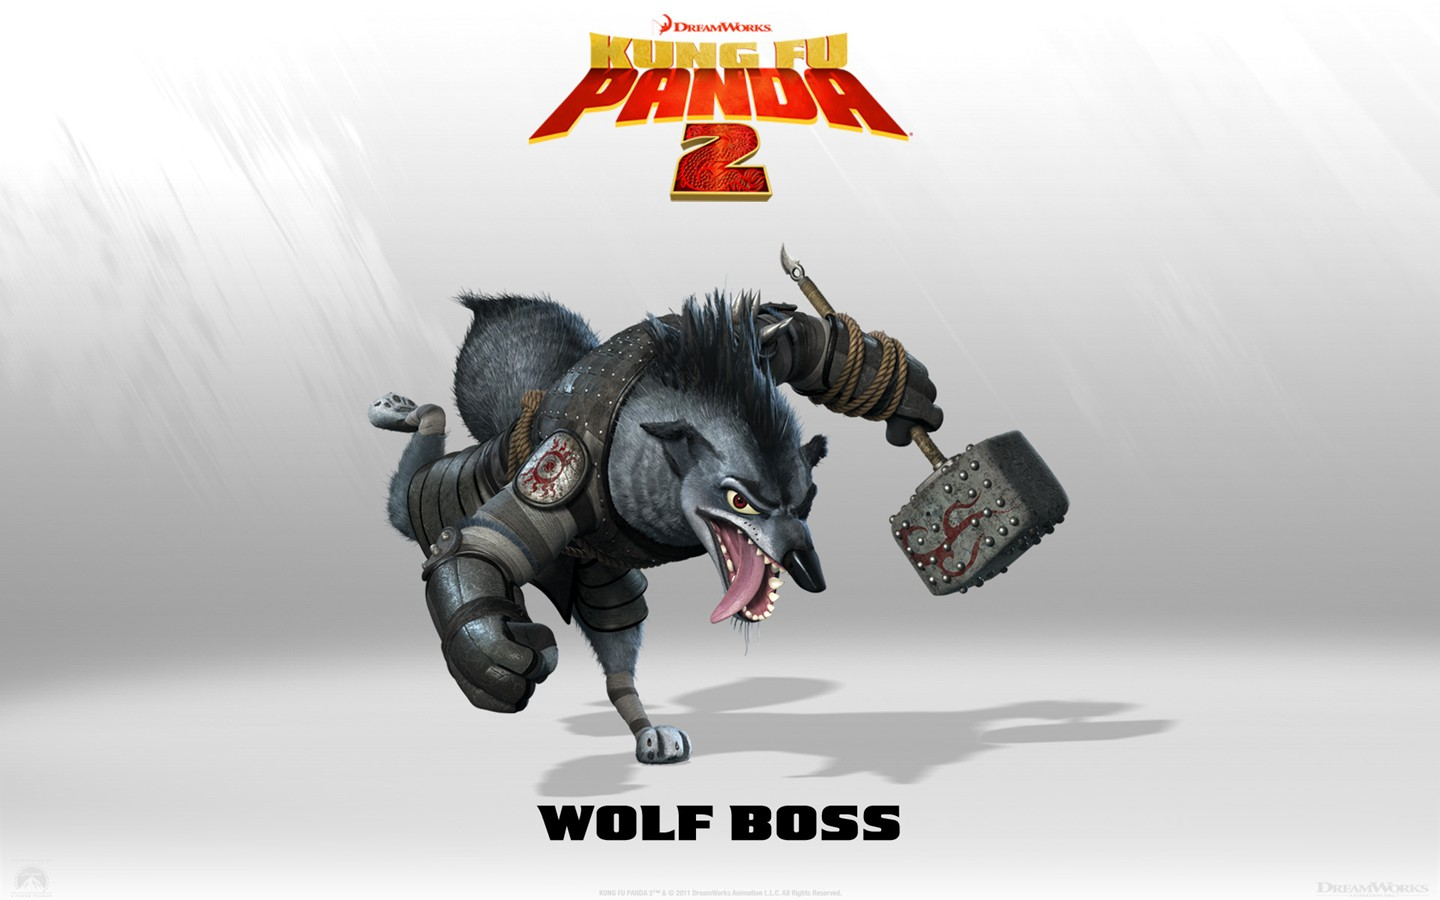 wolfboss Wolves boss 29626